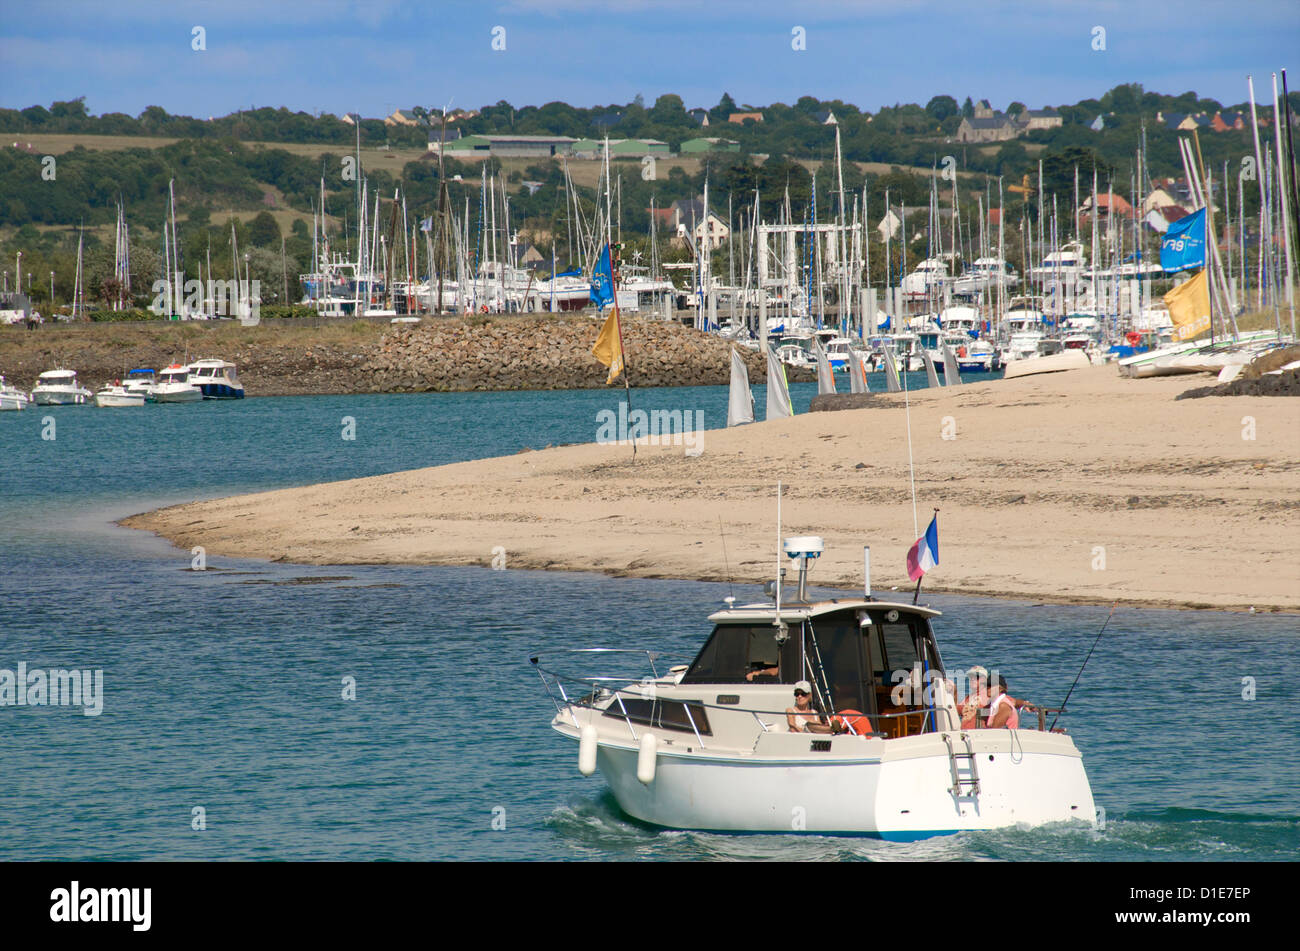 Marina harbour and boat, Barneville Carteret, Cotentin, Normandy, France, Europe - Stock Image